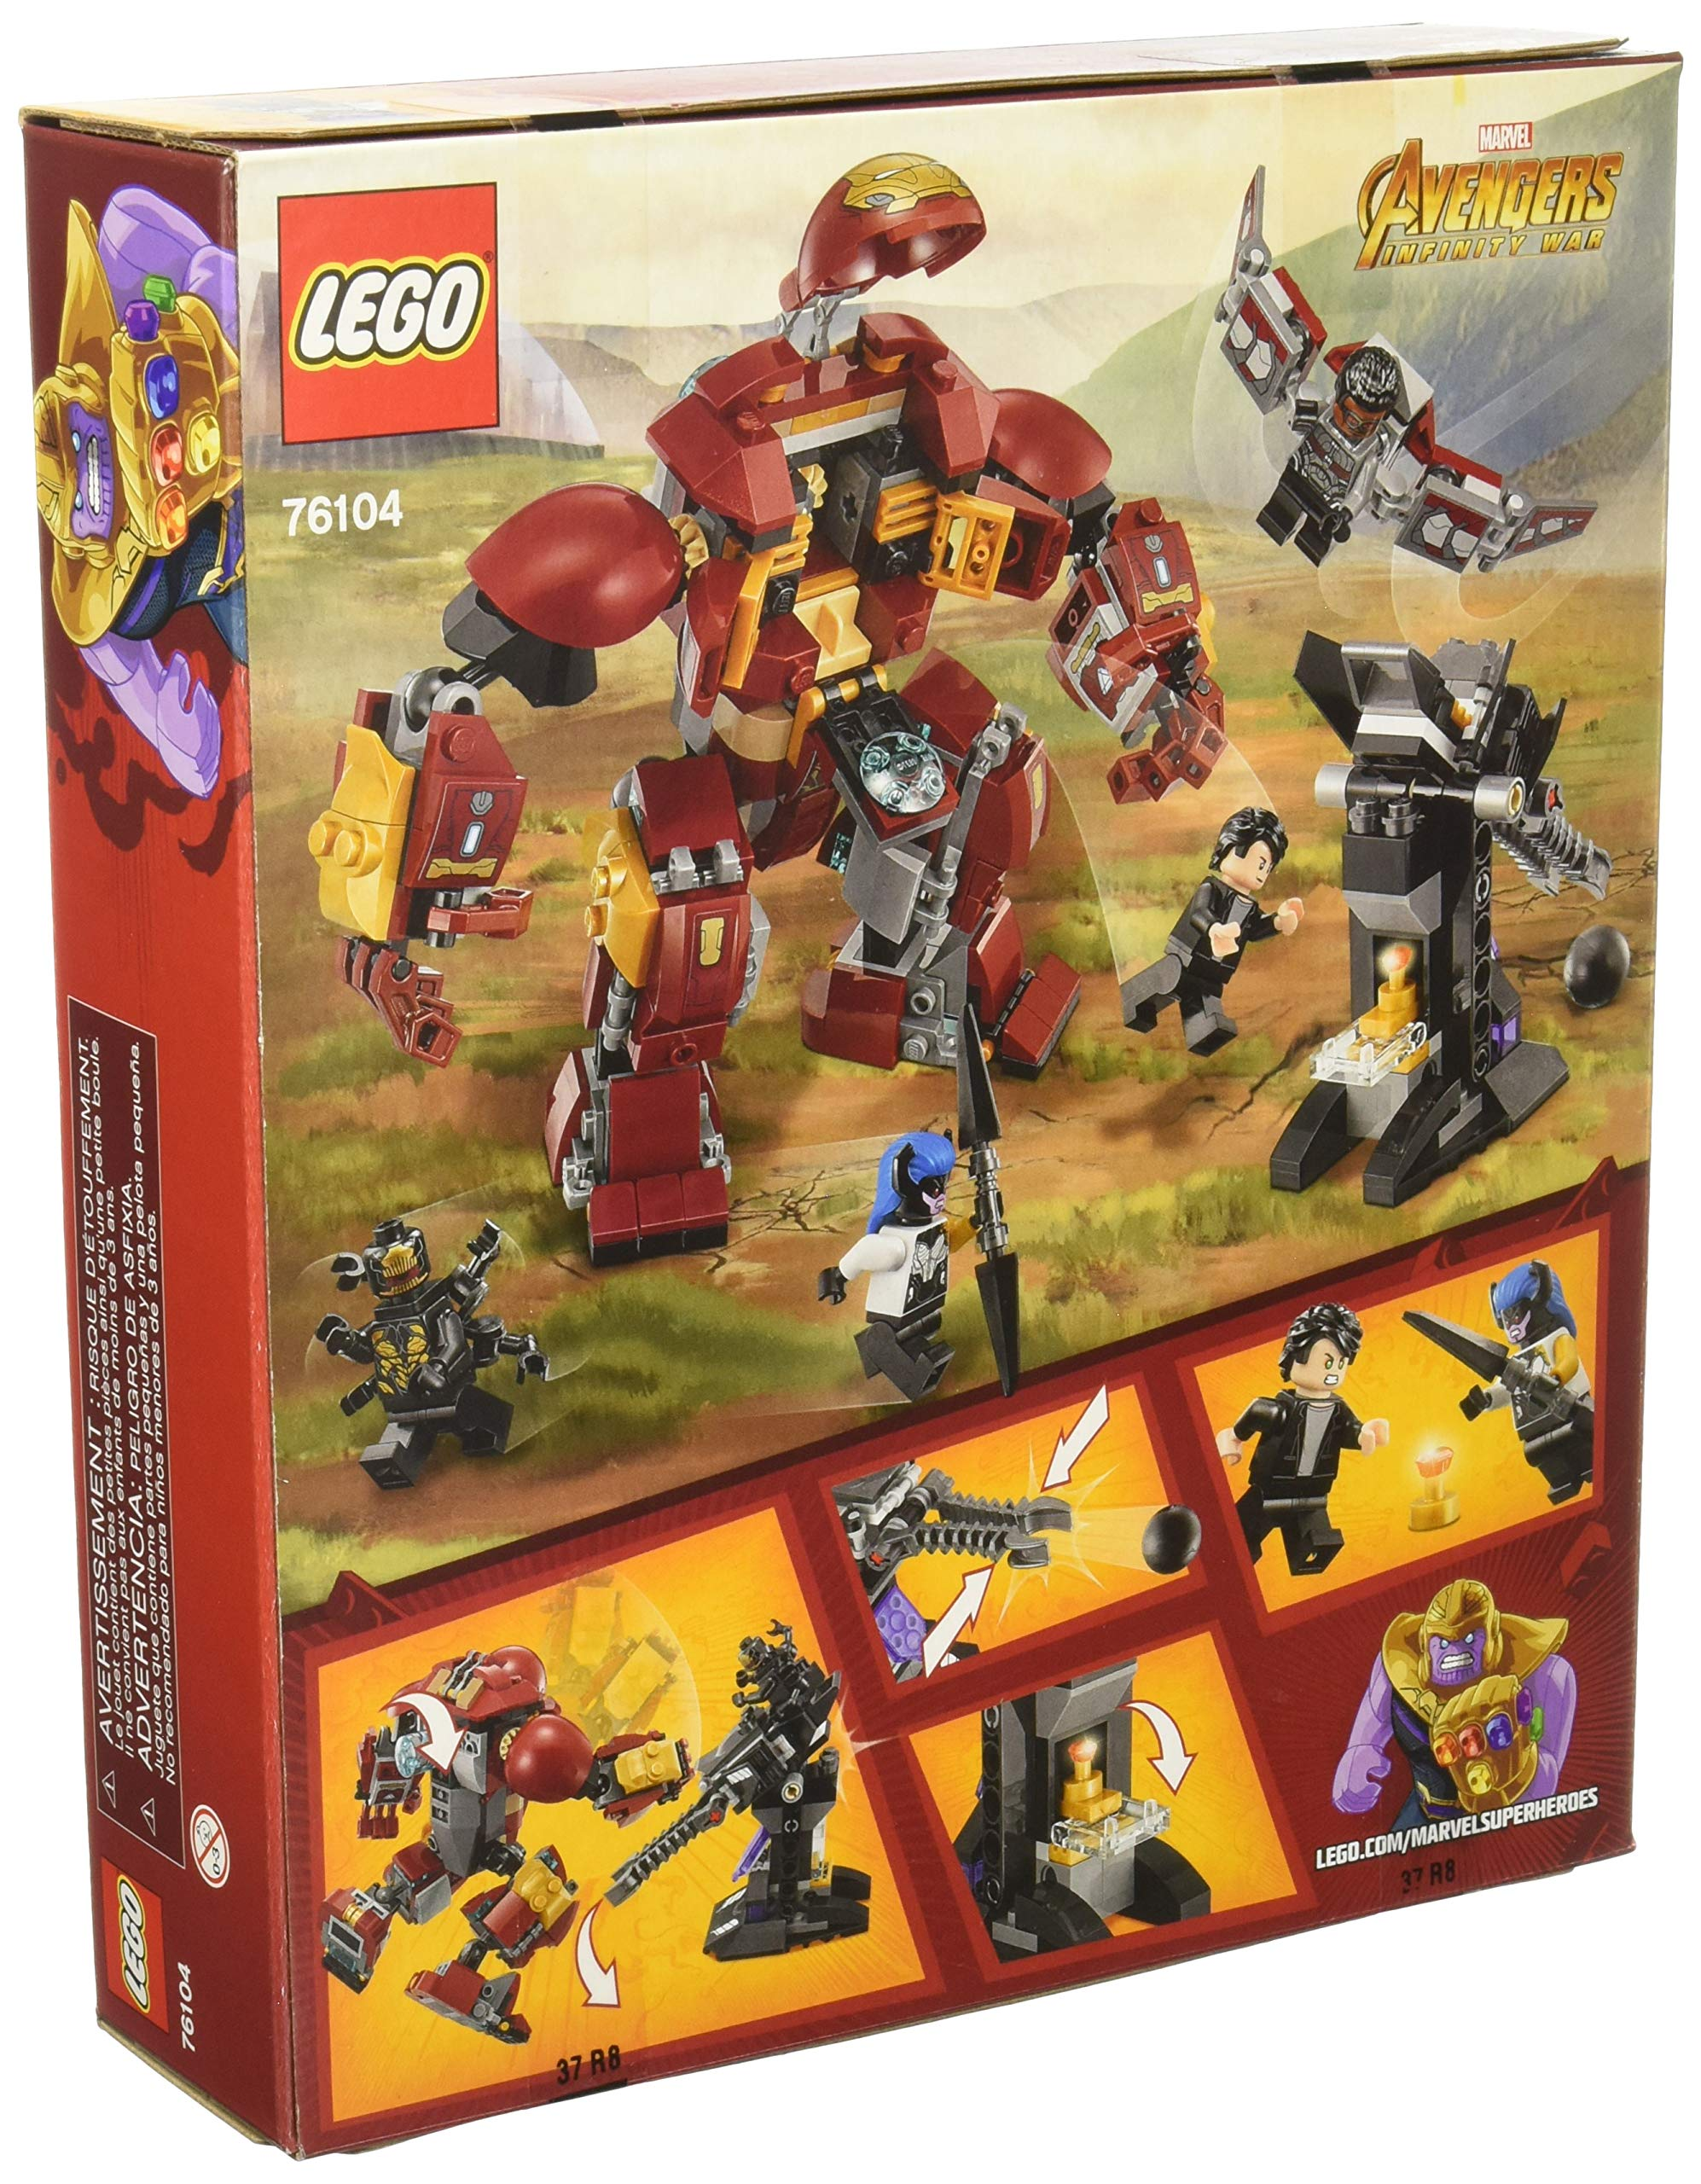 LEGO Marvel Super Heroes Avengers: Infinity War The Hulkbuster Smash-Up 76104 Building Kit (375 Piece) by LEGO (Image #2)